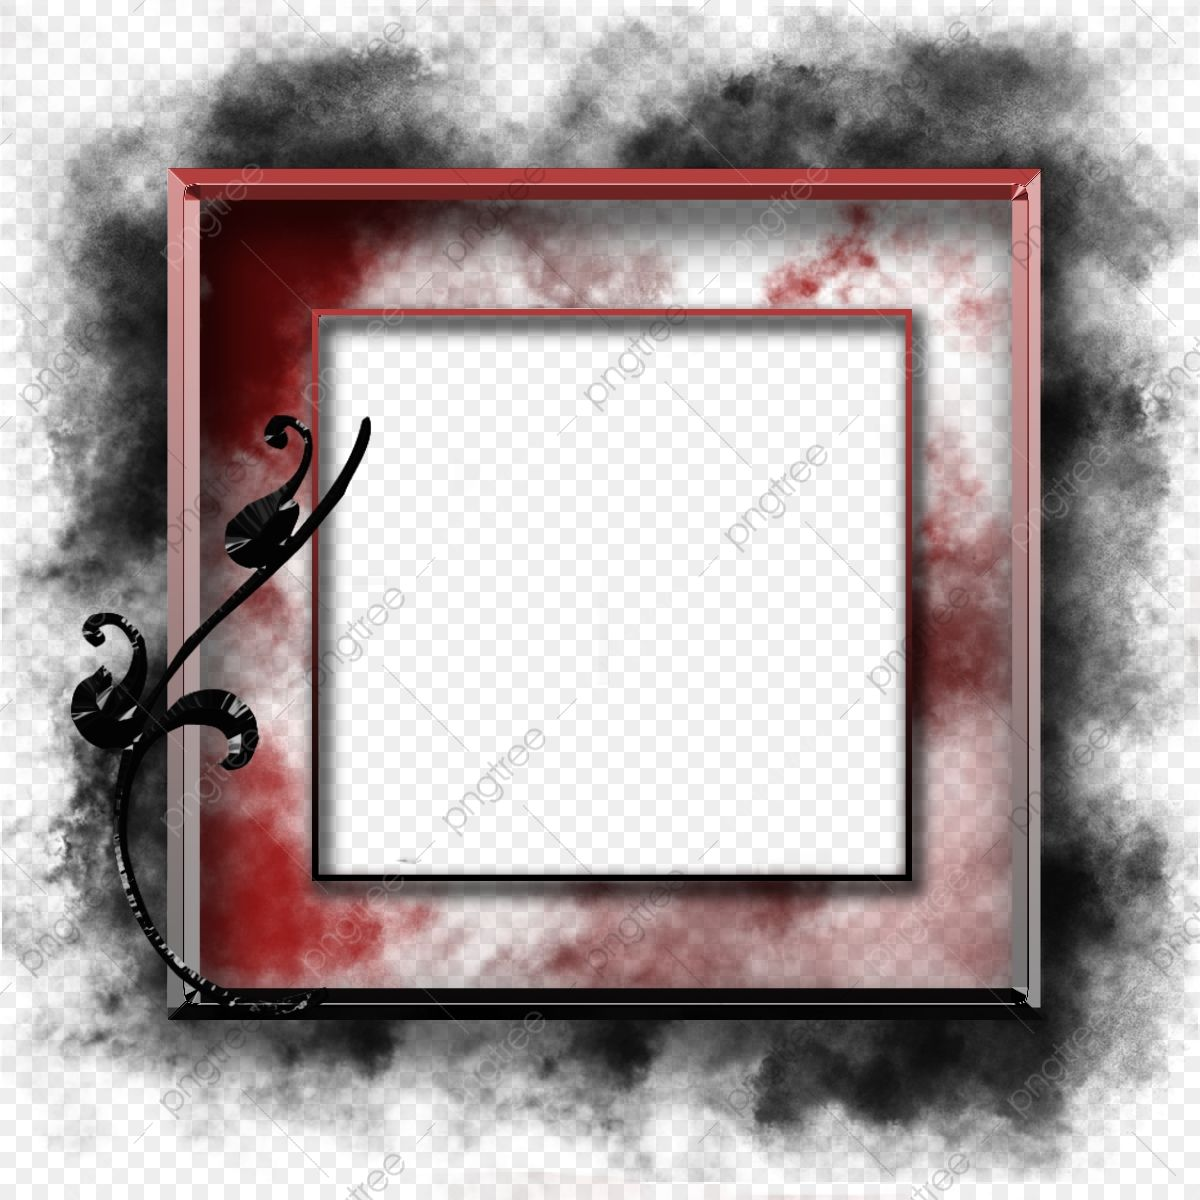 Smoke Floats On The Bright Red Frame Frame Border Sign Png Transparent Clipart Image And Psd File For Free Download In 2020 Red Frame Watercolor Flower Illustration Clip Art